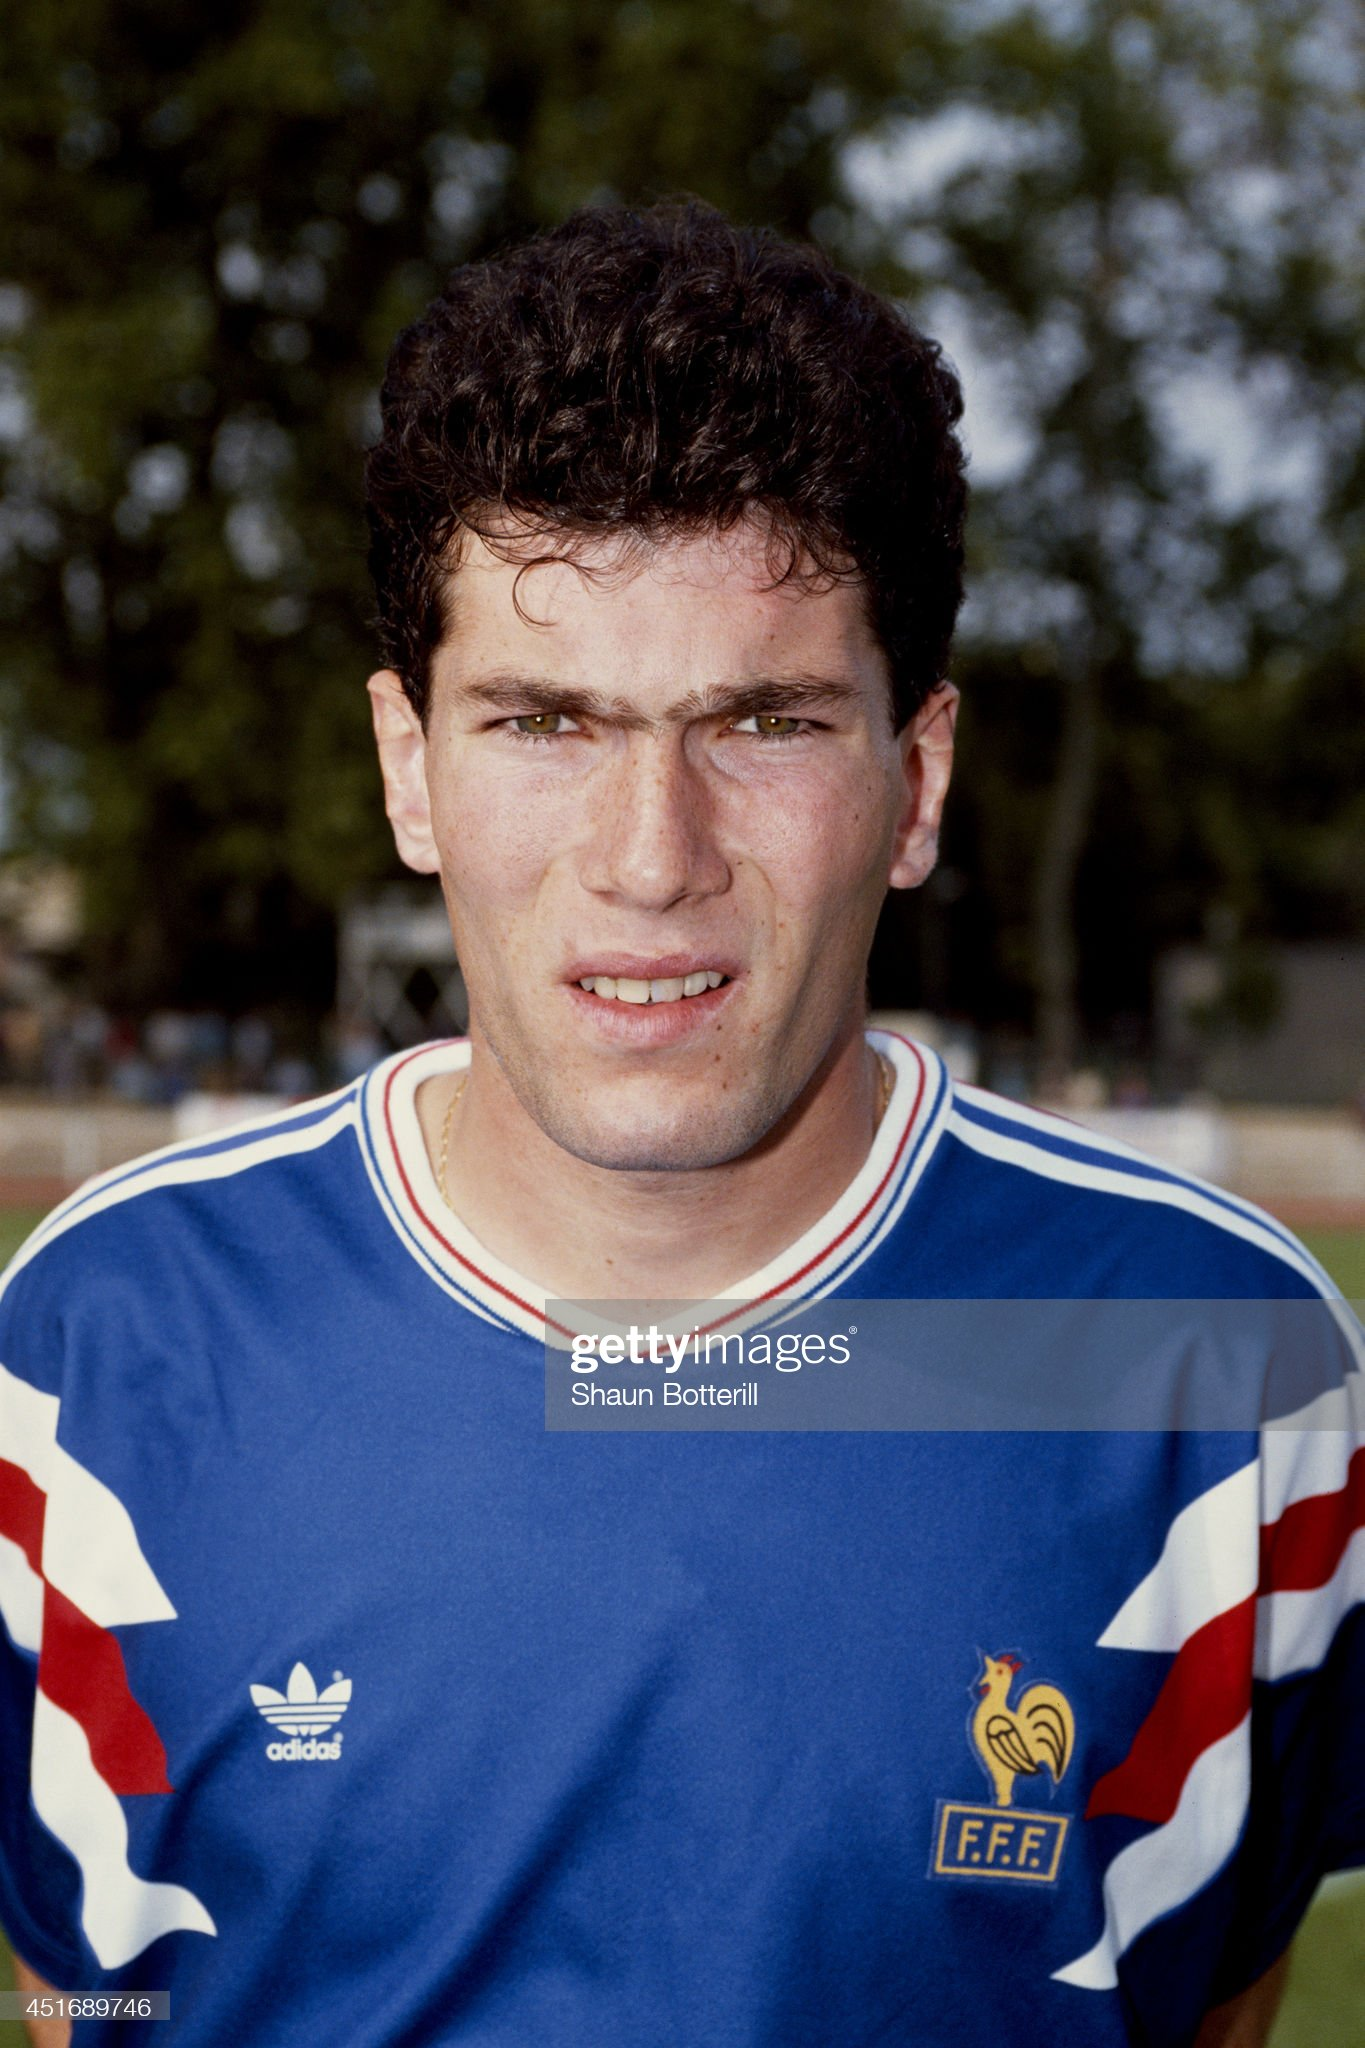 COLOR DE OJOS (clasificación y debate de personas famosas) France-player-zinedine-zidane-poses-for-a-picture-before-an-under21-picture-id451689746?s=2048x2048